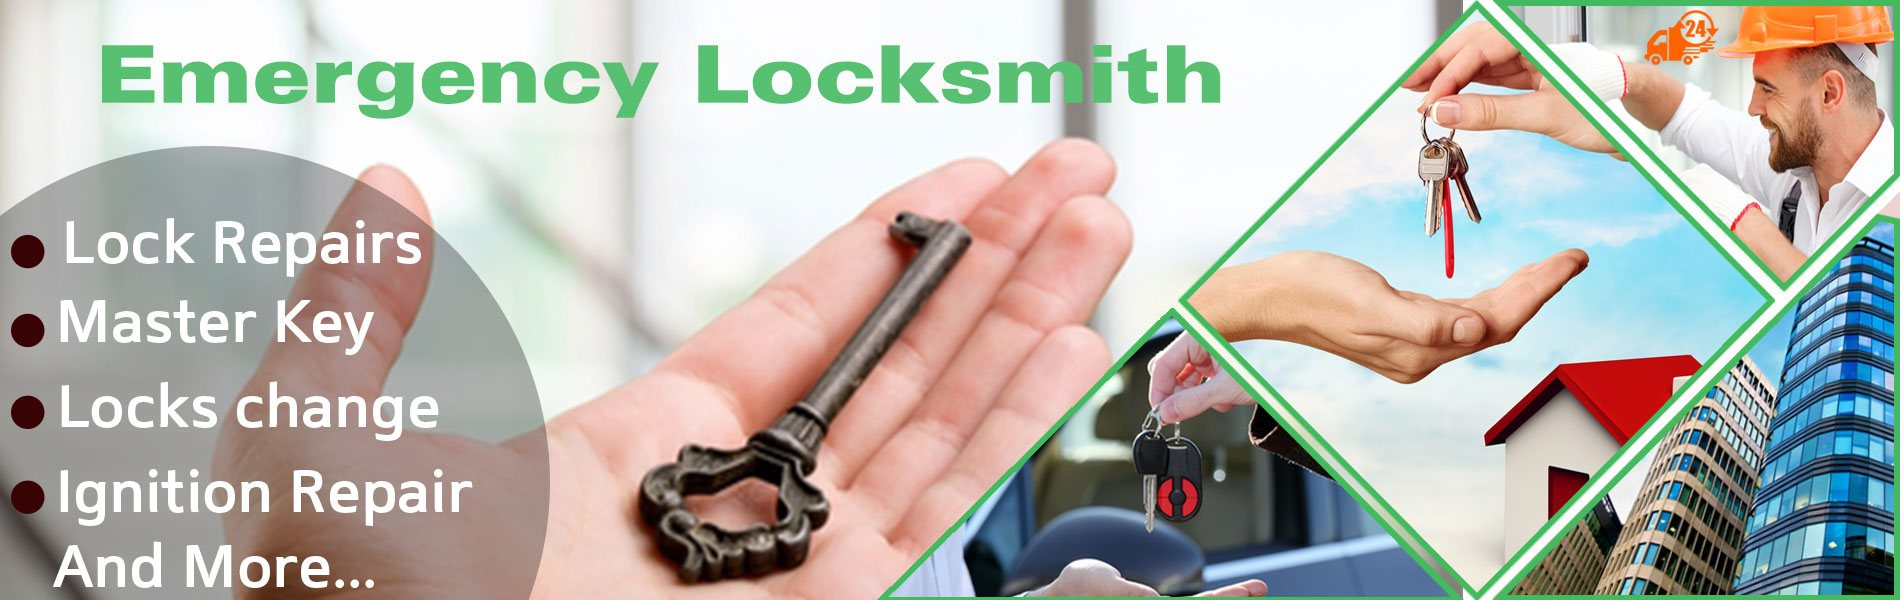 Lock Safe Services Pittsburgh, PA 412-387-9467